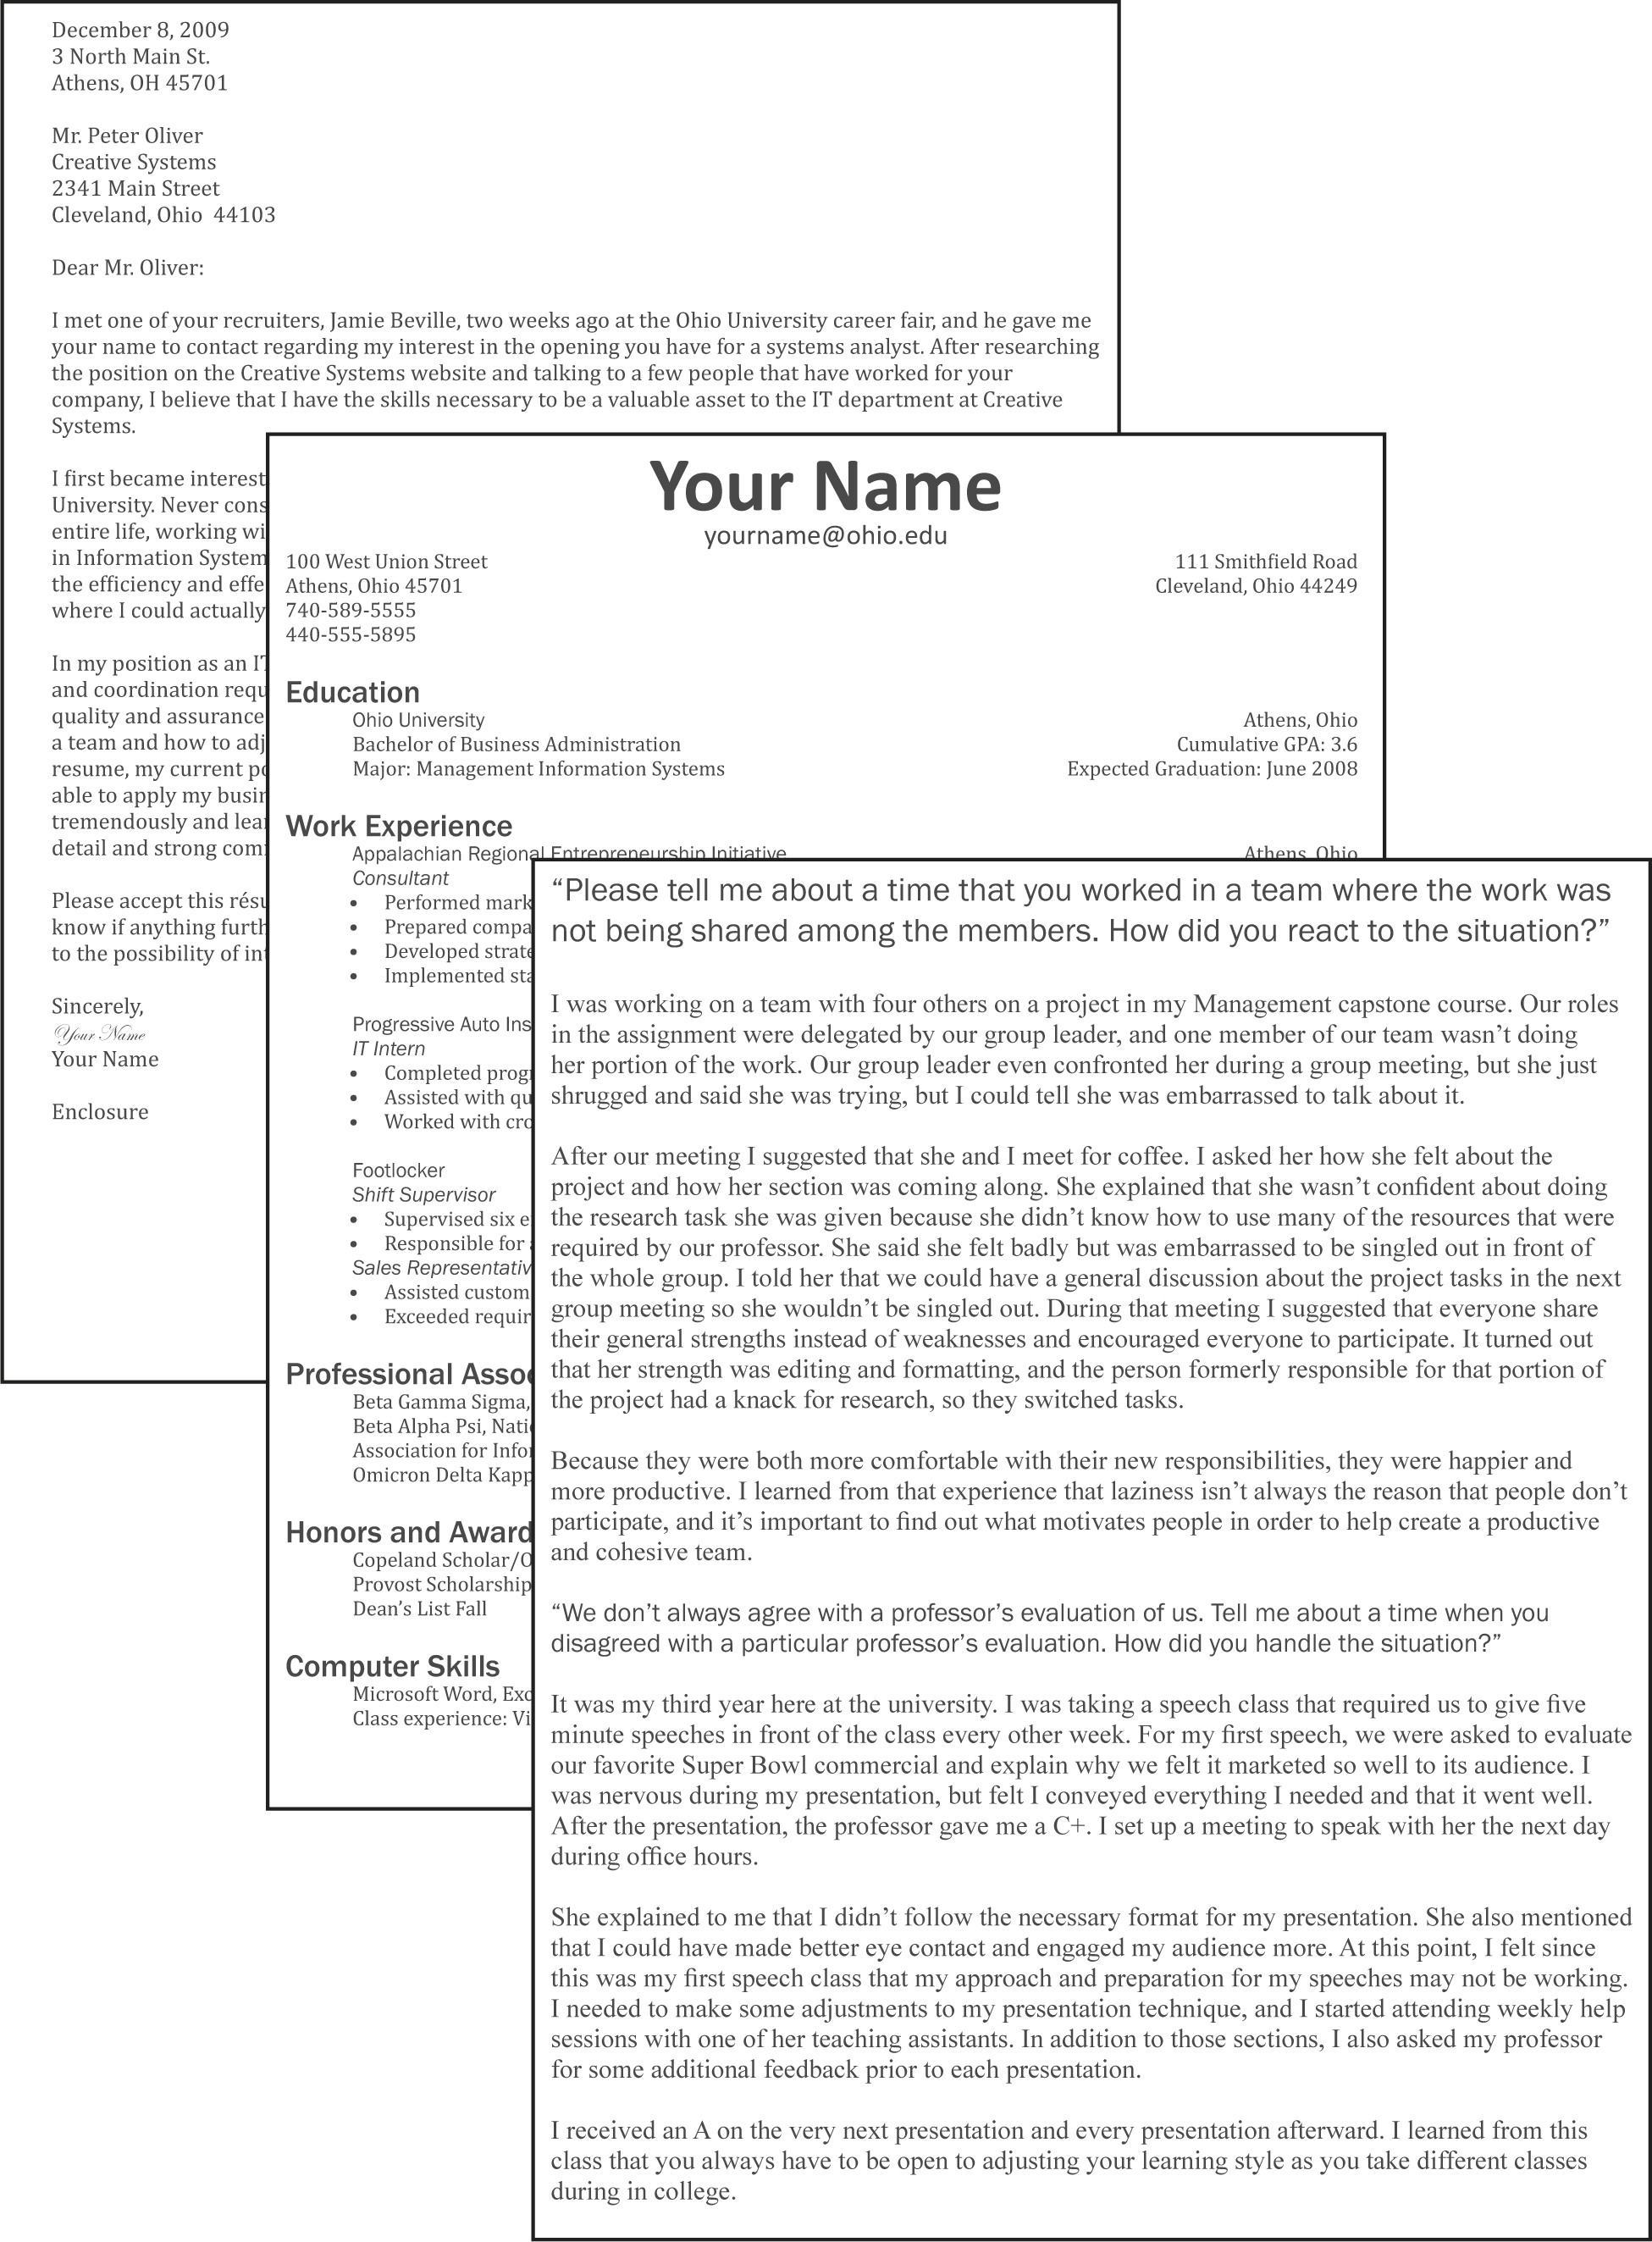 write your resume online resume help create write resume online